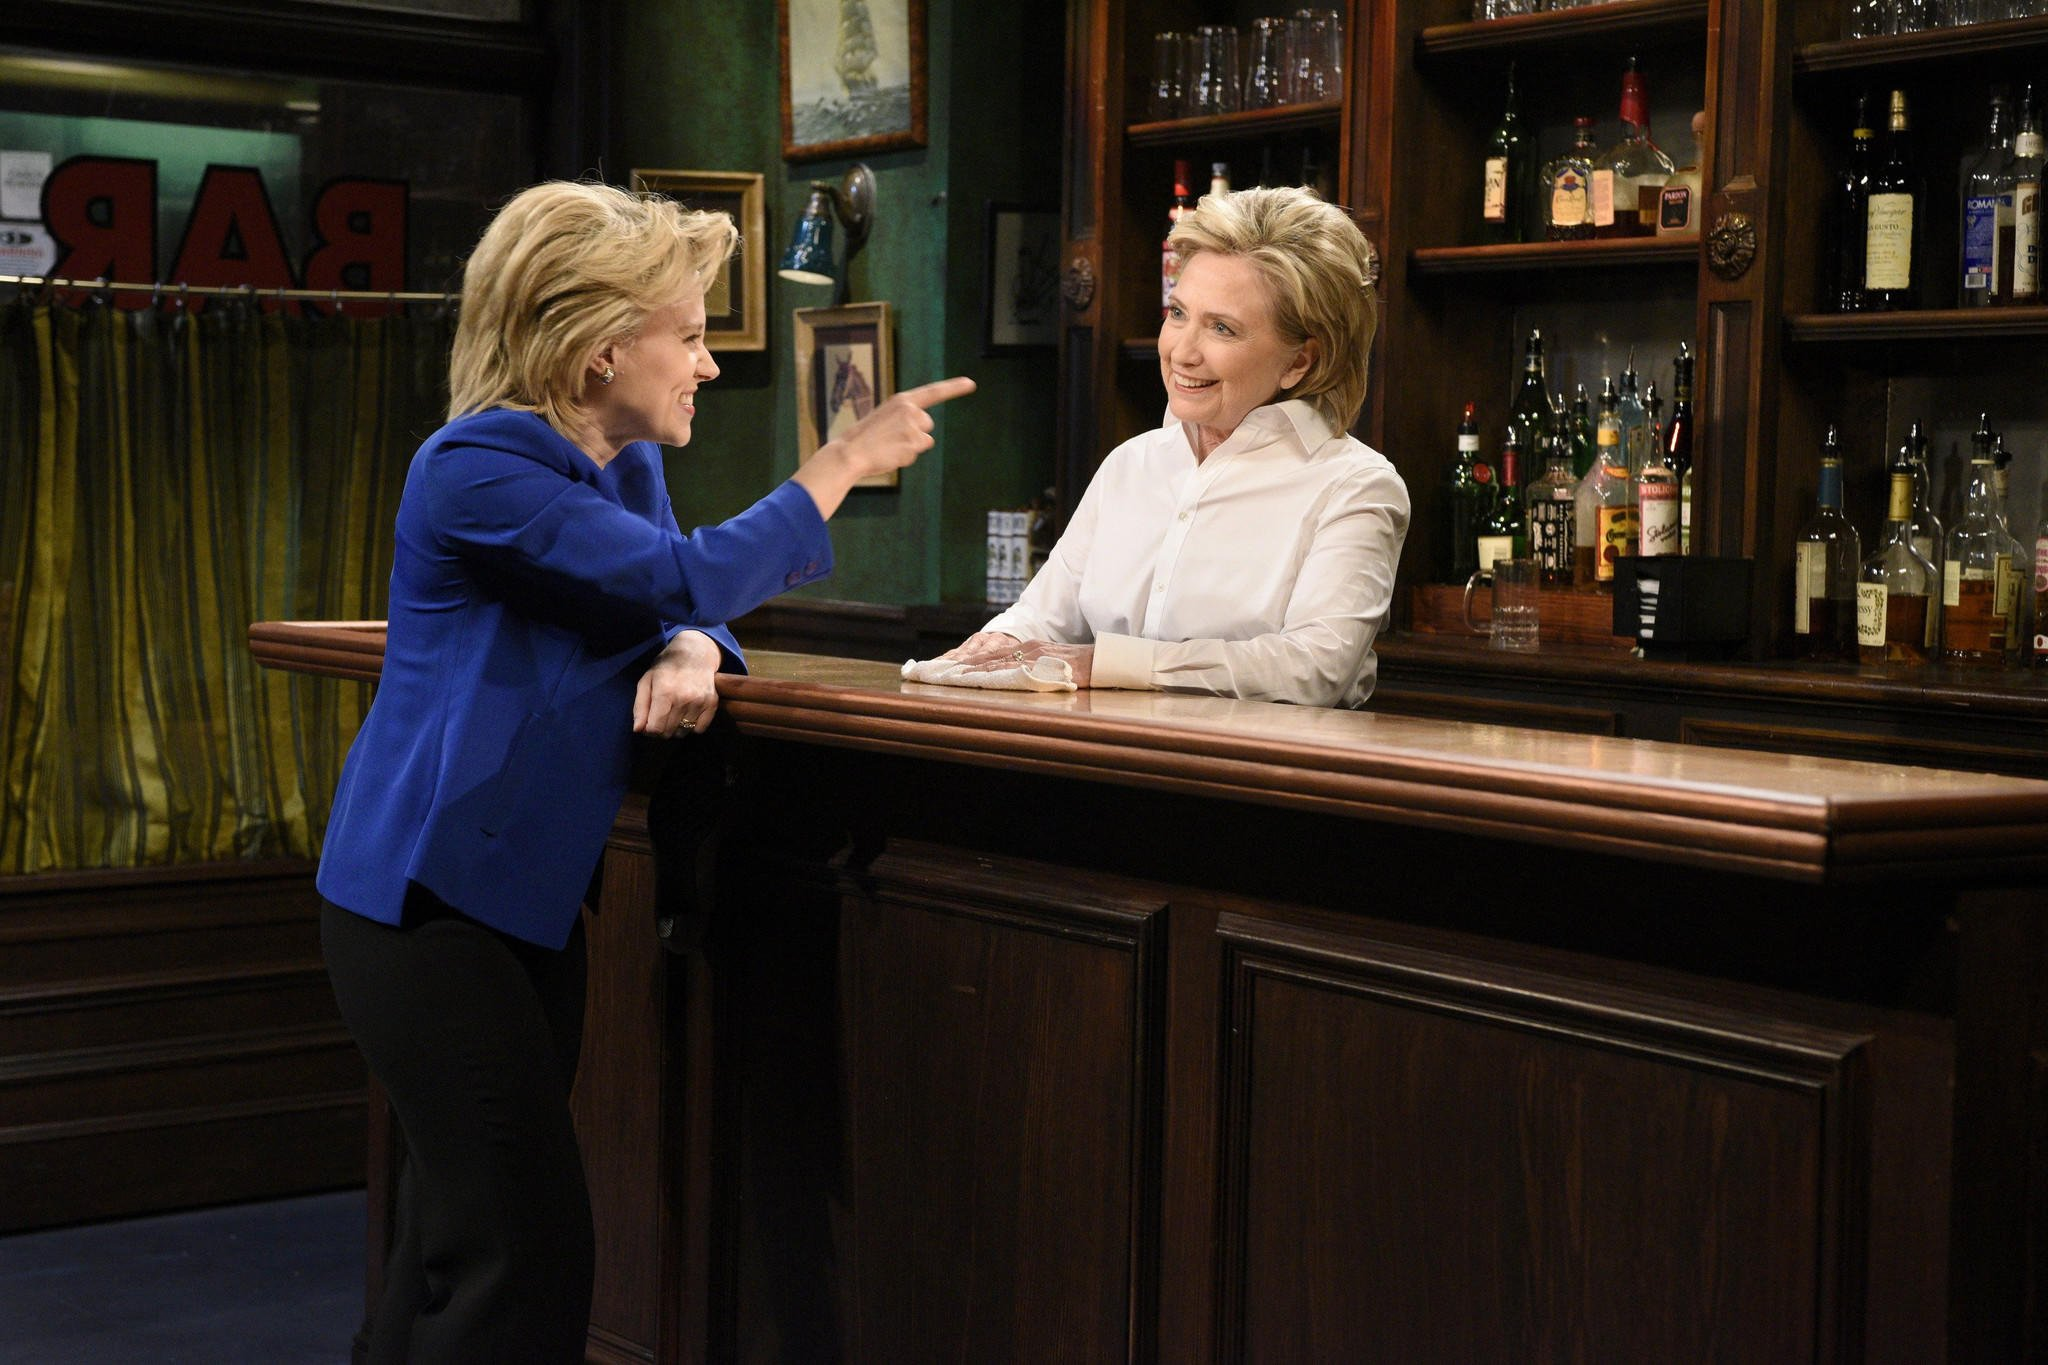 Here's what Hillary Clinton thought about Kate McKinnon's Emmy-winning 'SNL' tribute https://t.co/gixfgdc33e https://t.co/8BncdNKHr2